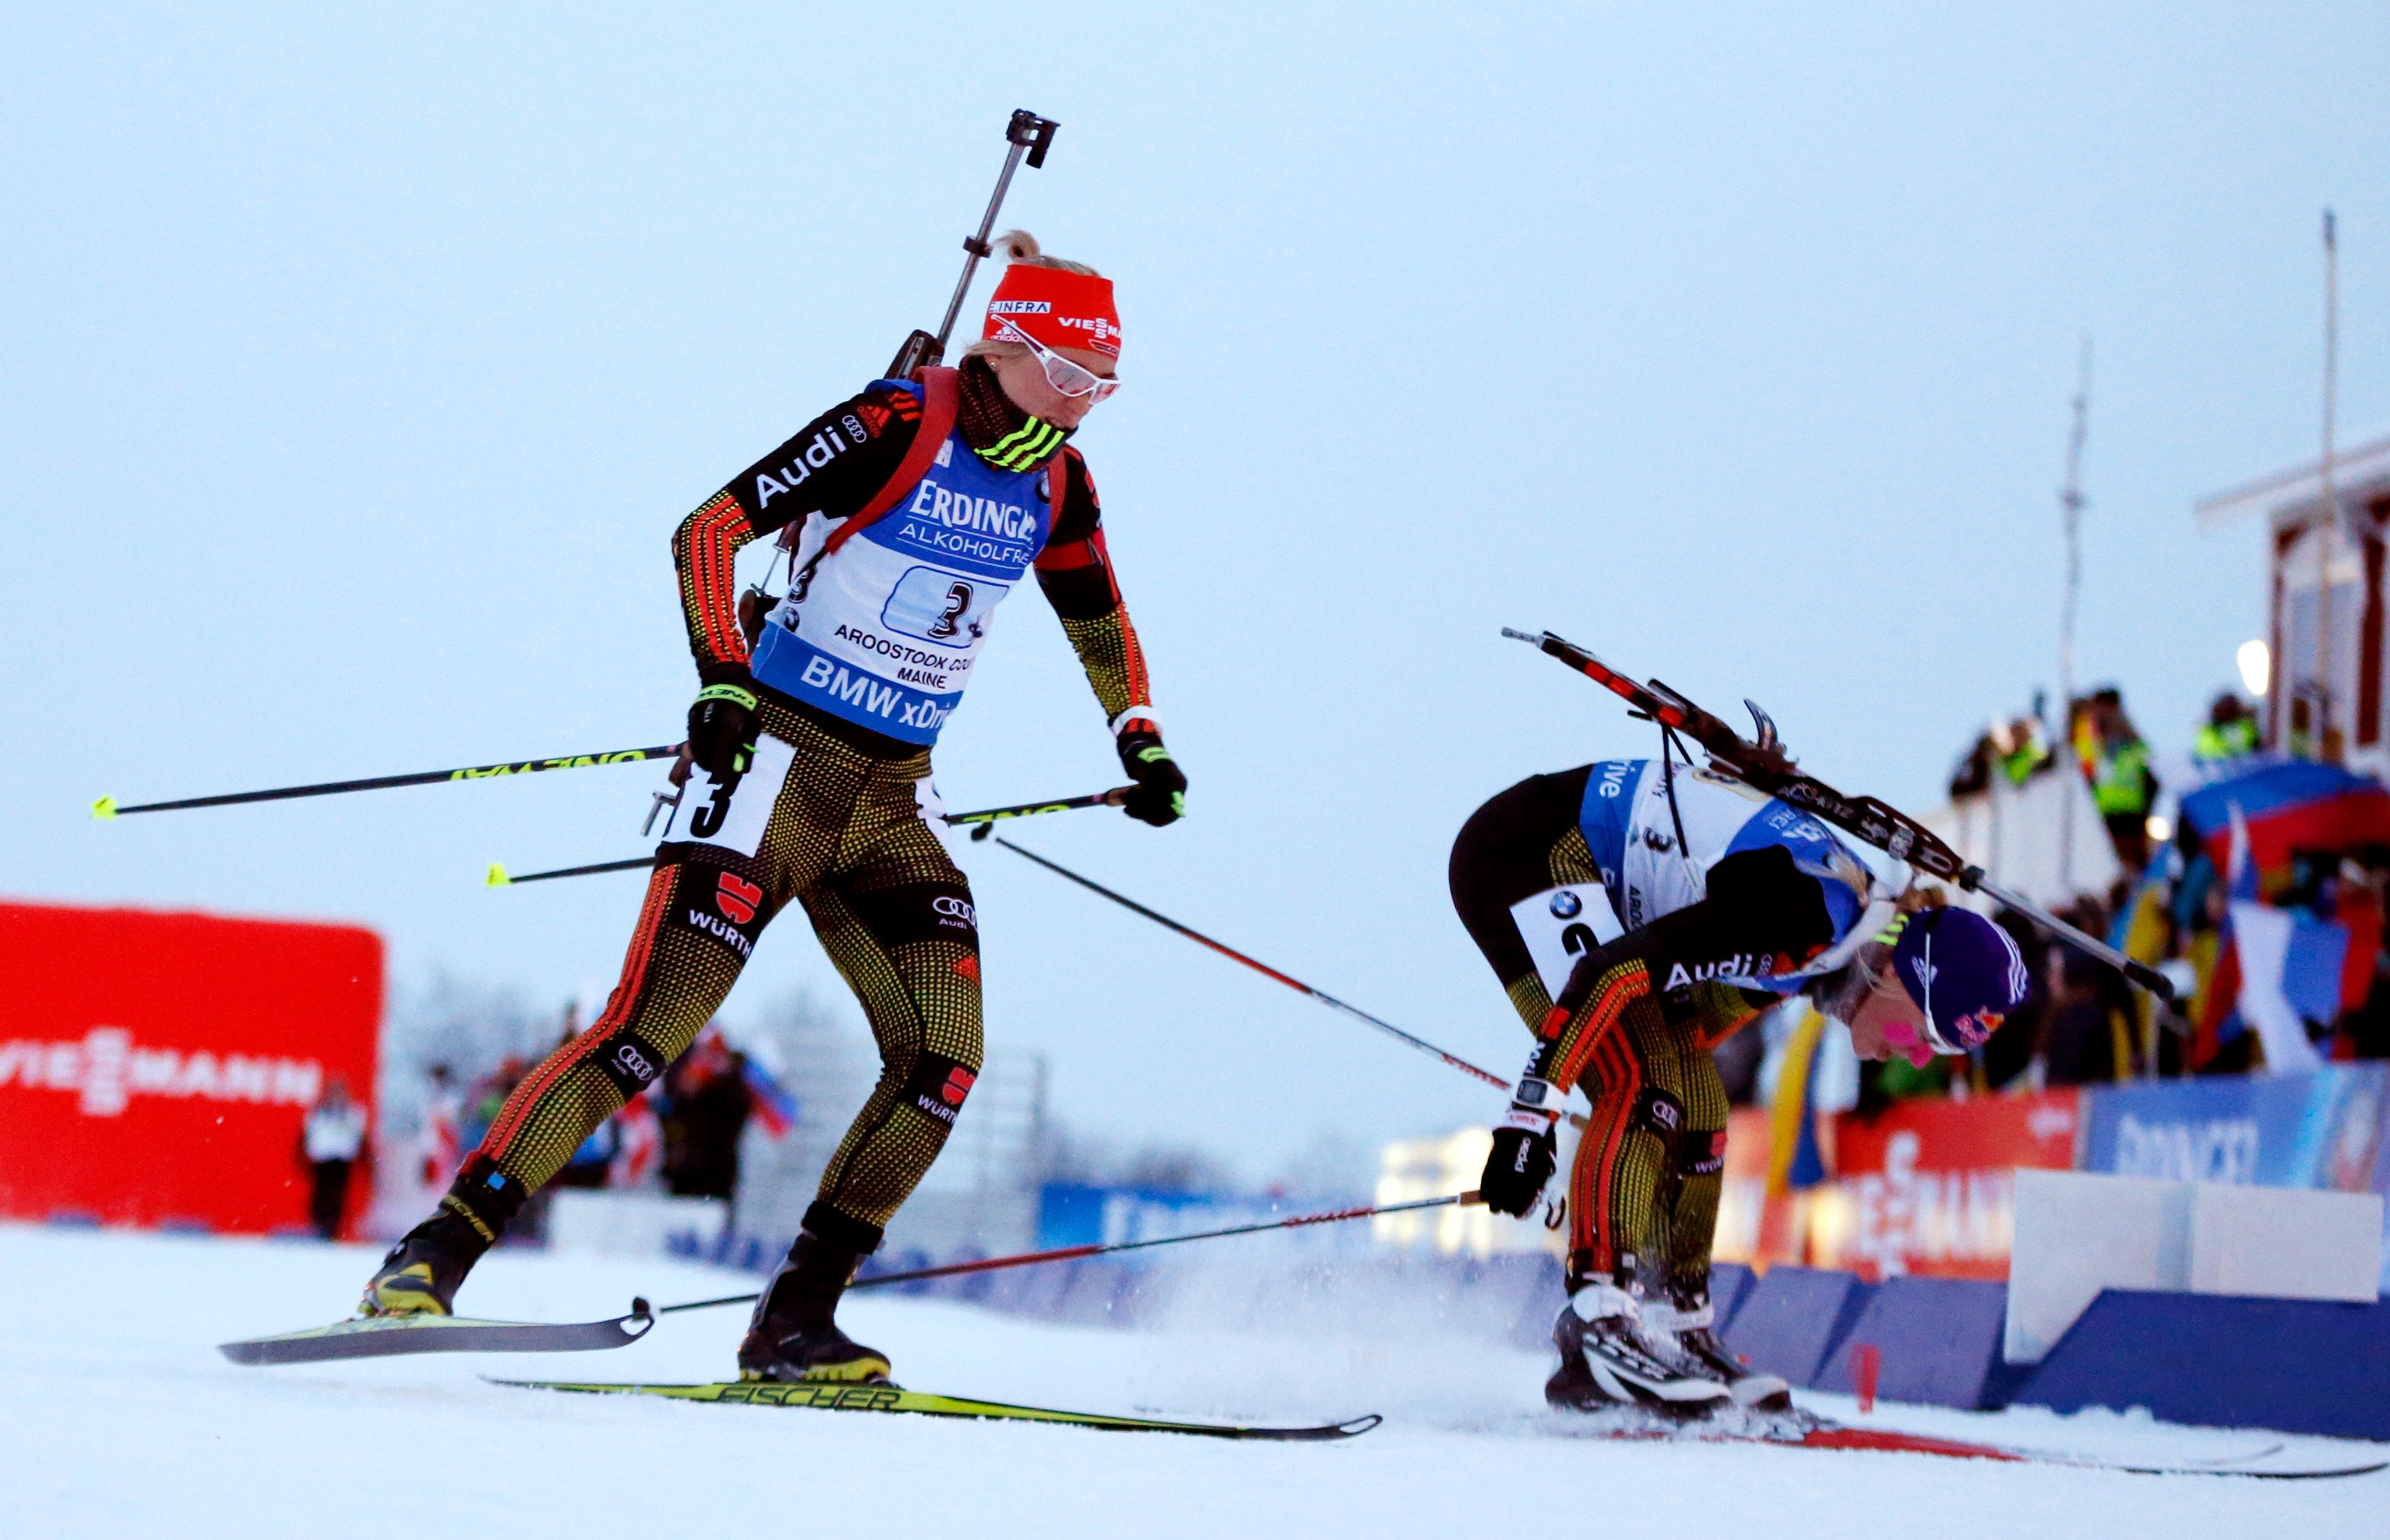 world_cup_biathlon-a088045586784efabbffa_r2409.jpeg